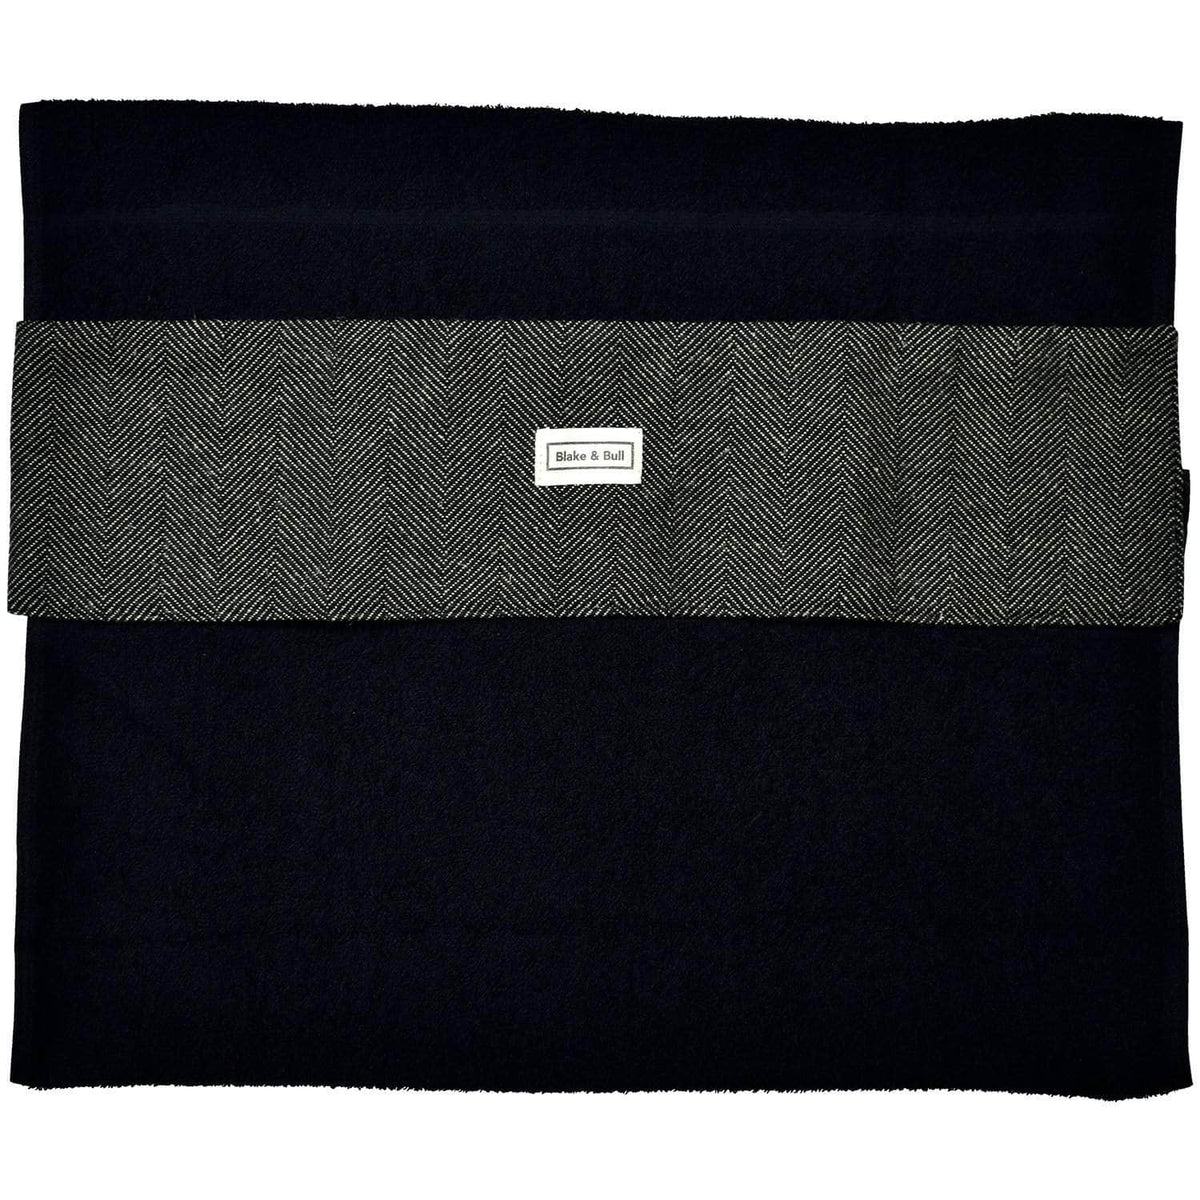 Wide (51 cm) hanging towel with velcro attachment - 'Professional'